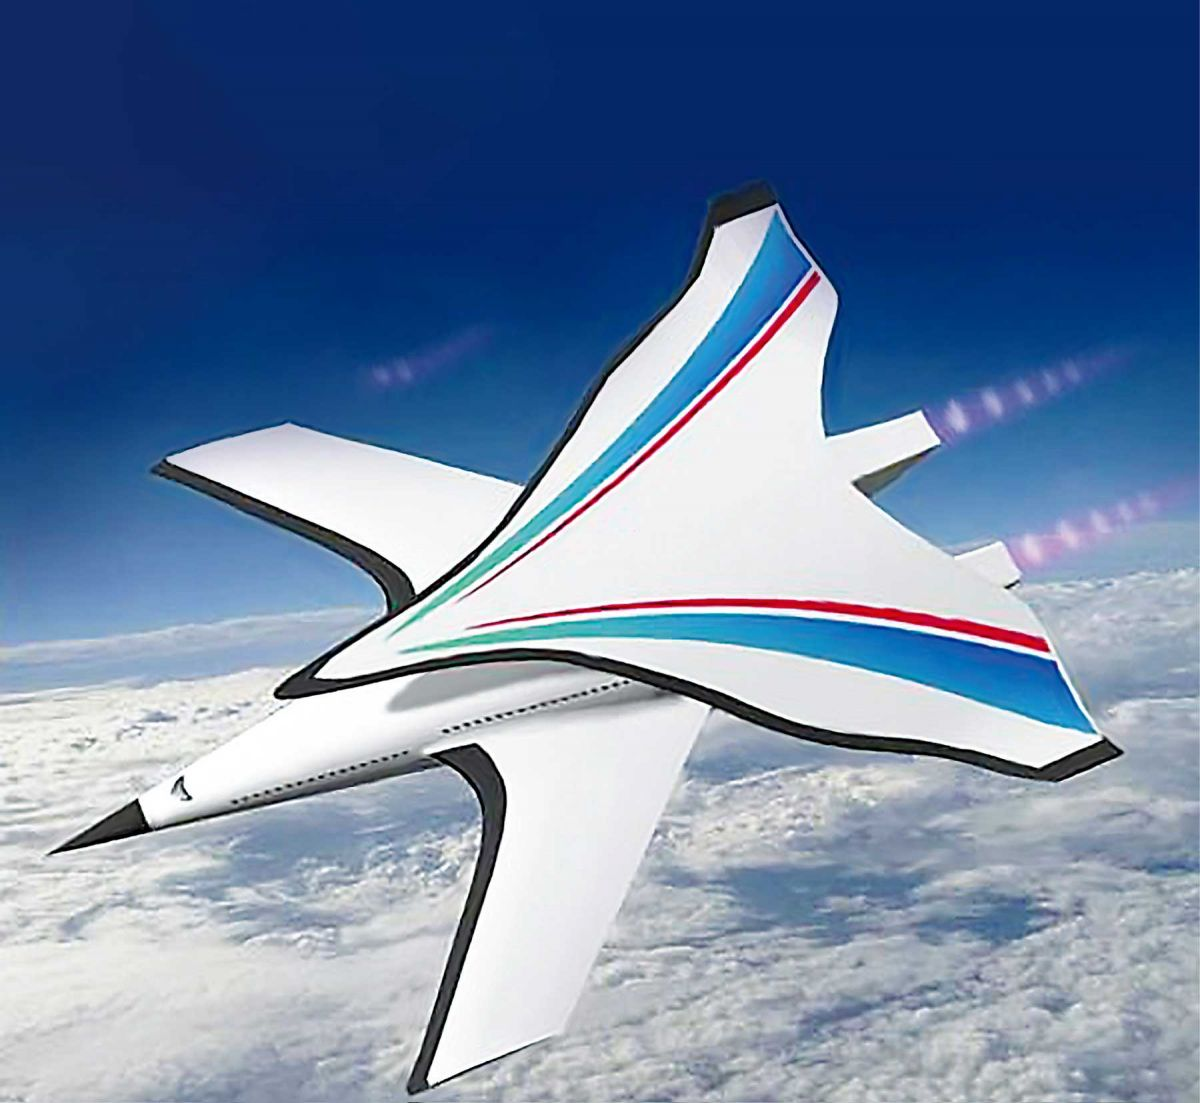 An artist's depection of the I Plane, a hypersonic plane being developed by China. It features a highly pointed nose with two sets of wings.